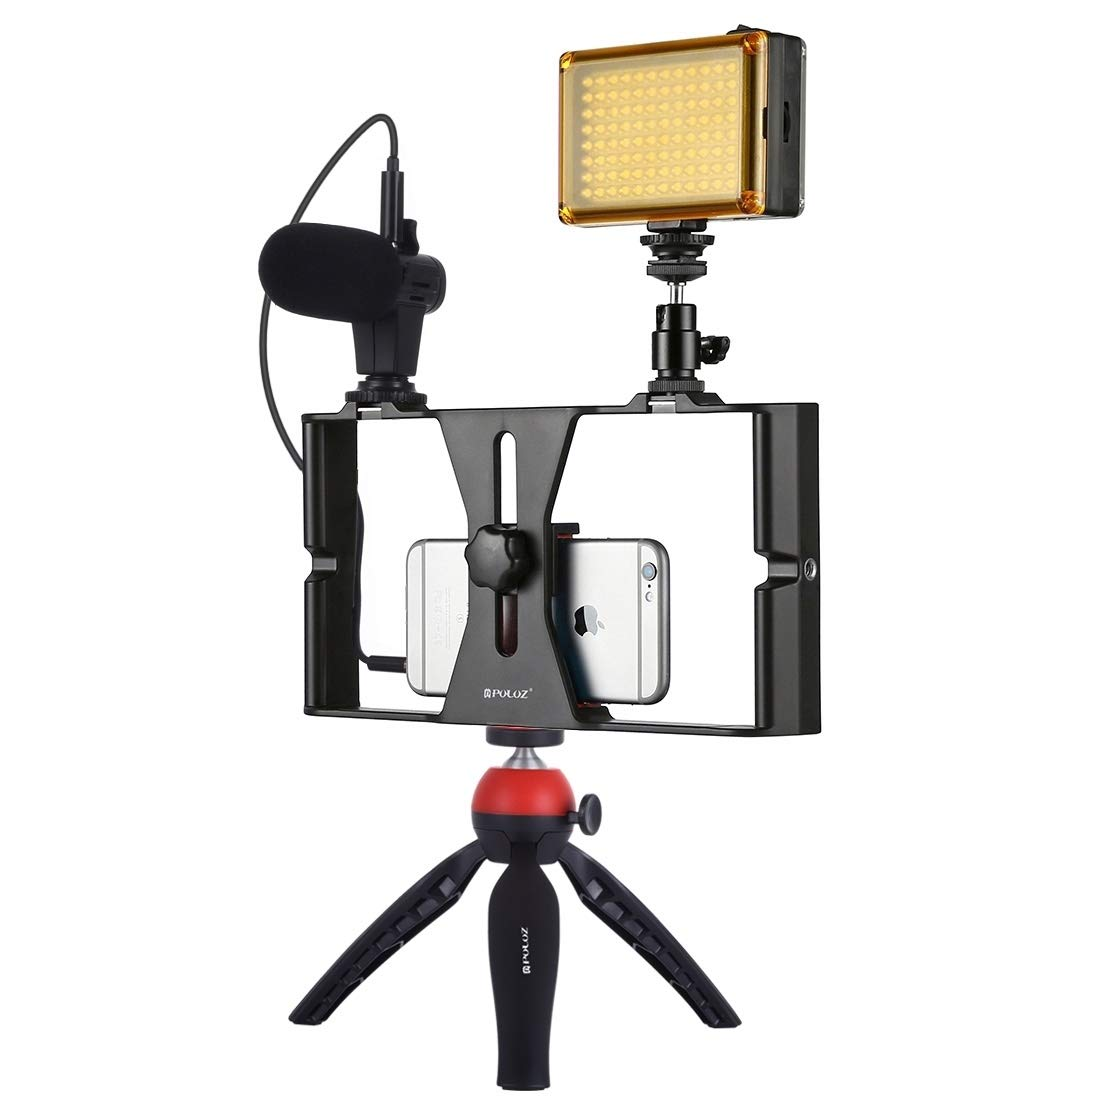 JIN Camera Accessory 4 in 1 Vlogging Live Broadcast LED Selfie Light Smartphone Video Rig Kits with Microphone + Tripod Mount + Cold Shoe Tripod Head for iPhone, Galaxy, Huawei, Xiaomi, HTC, LG, Googl by JIN-US